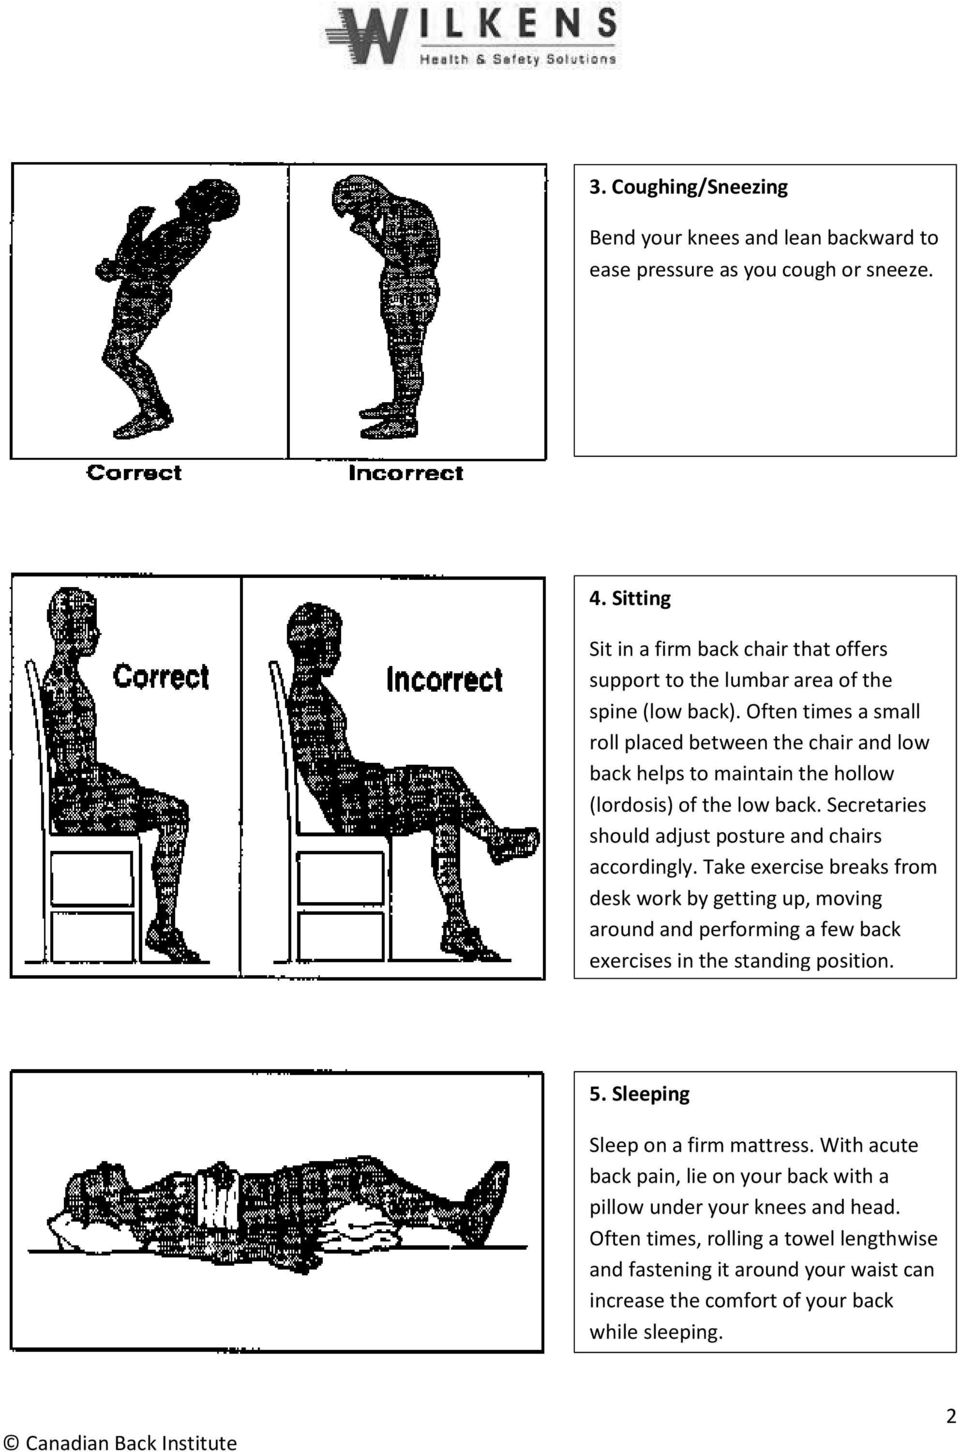 Often times a small roll placed between the chair and low back helps to maintain the hollow (lordosis) of the low back. Secretaries should adjust posture and chairs accordingly.